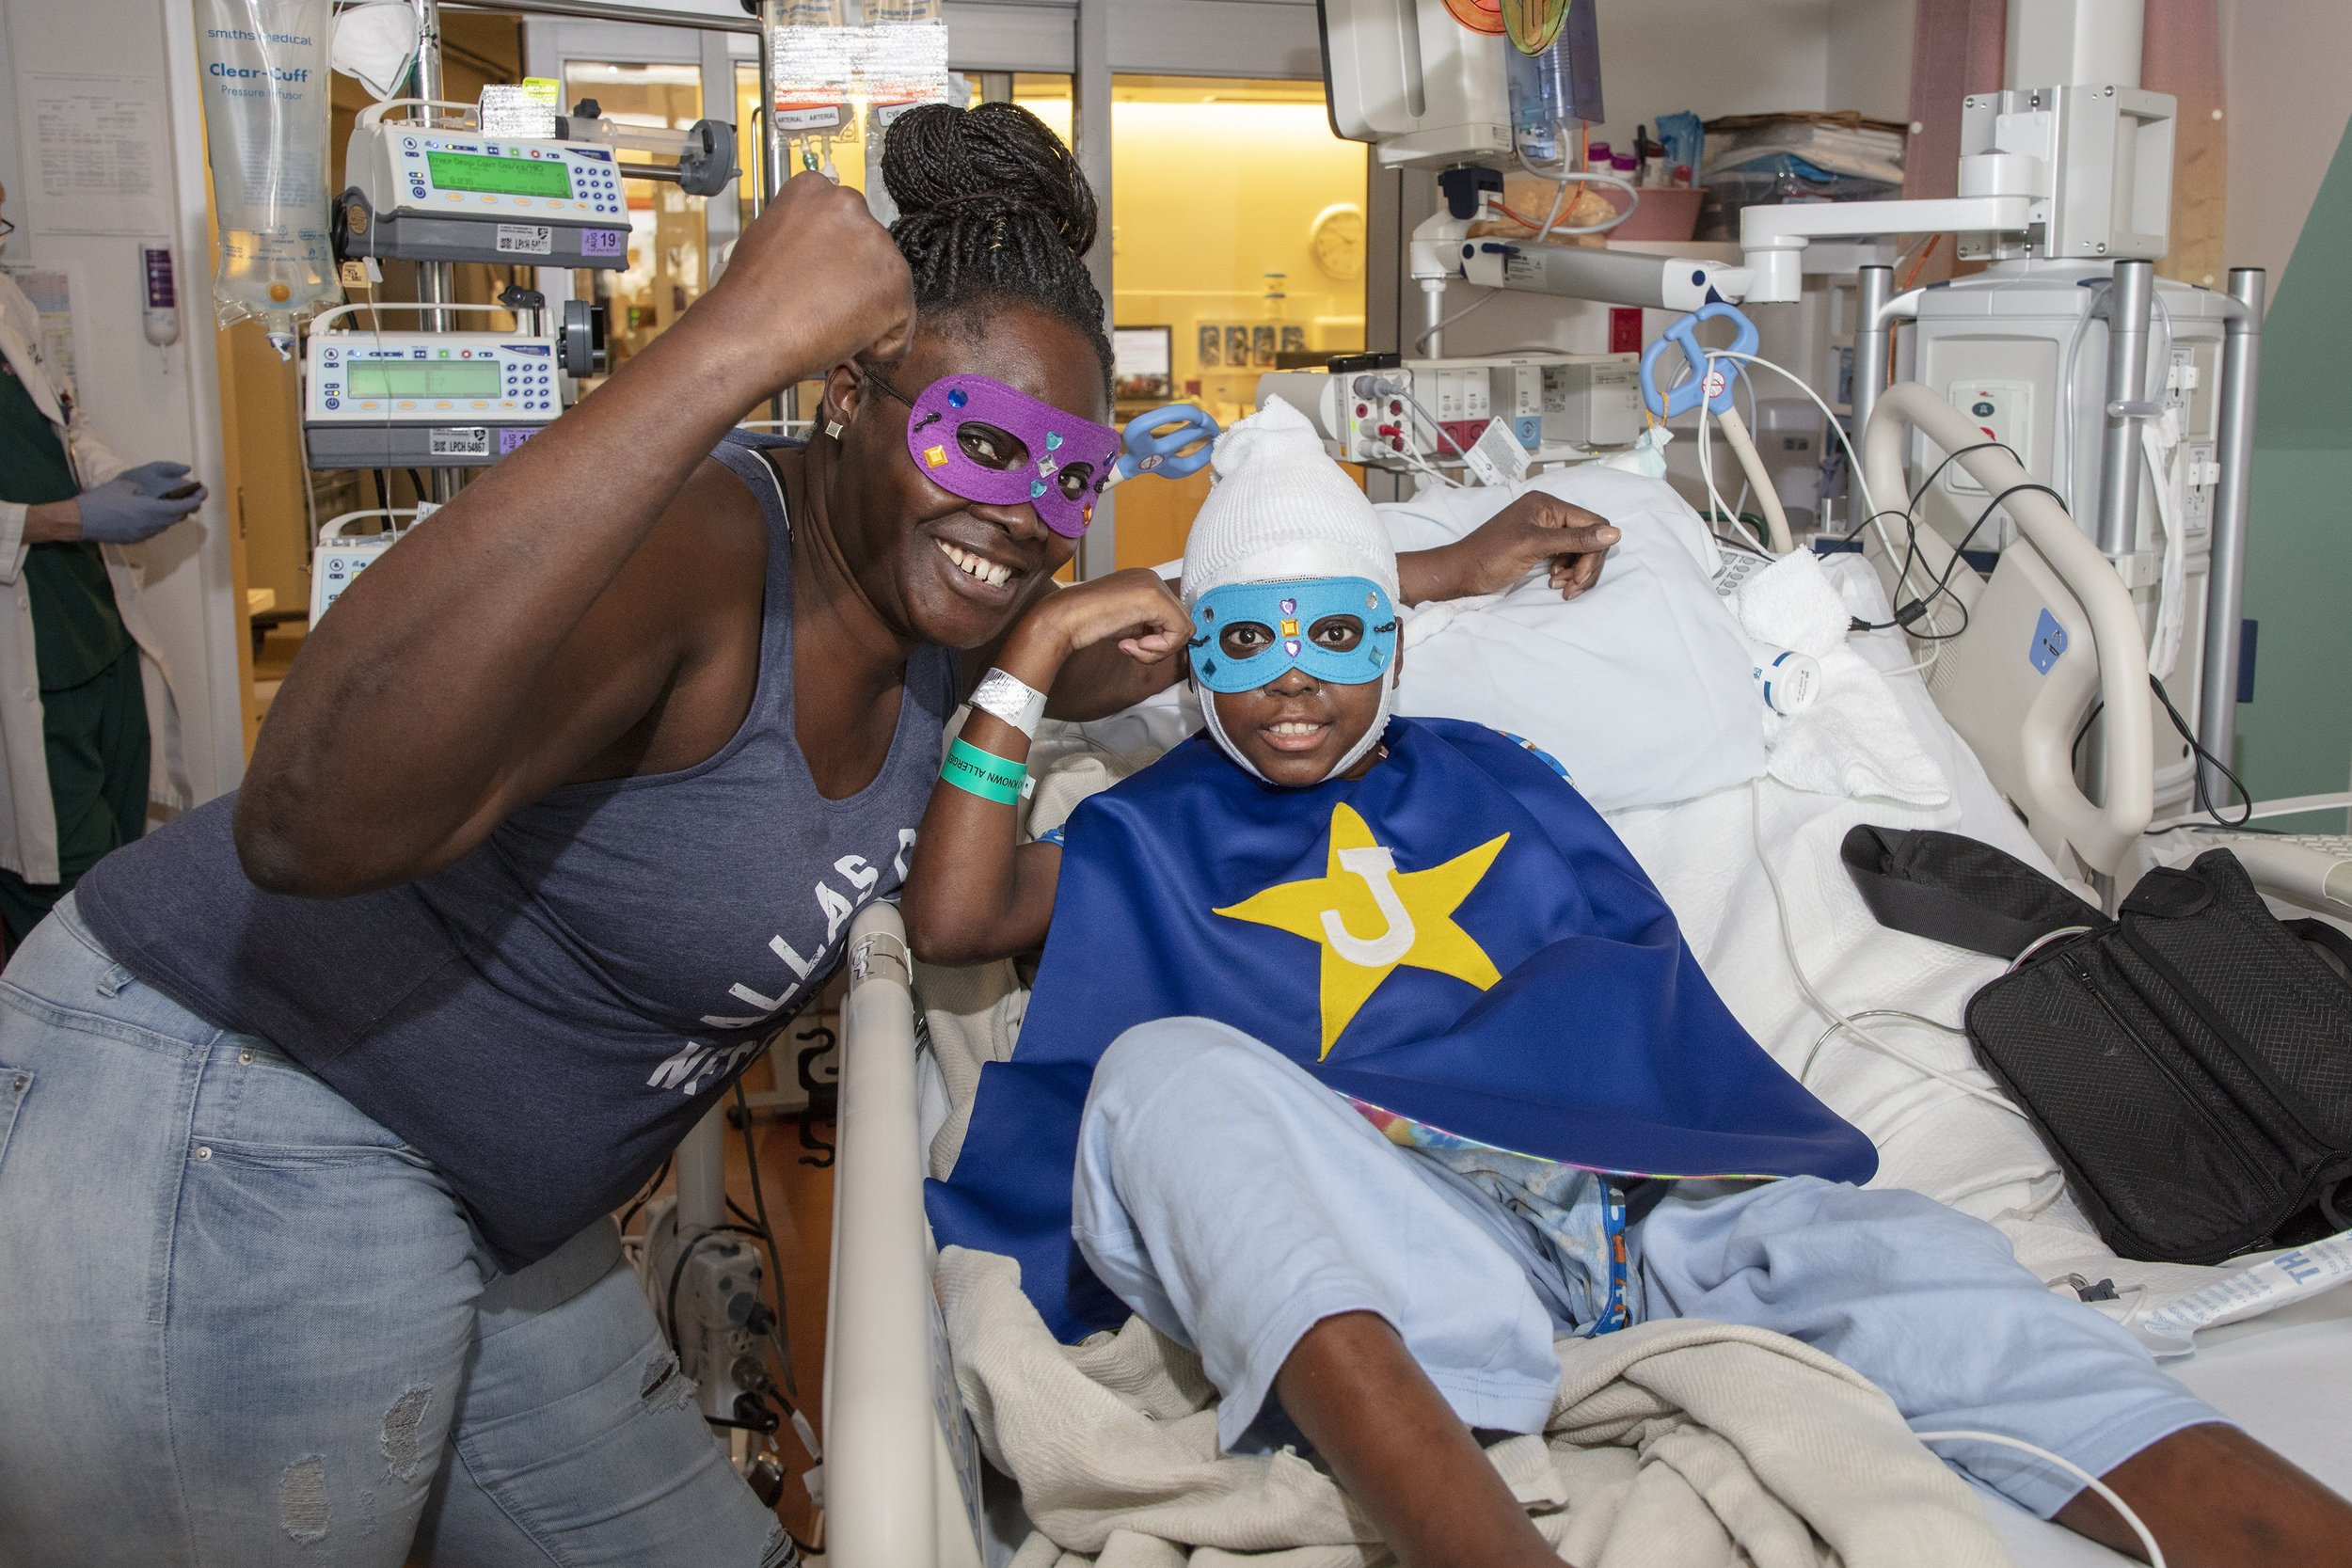 Capes4Heroes Visit - 2018 Lucile Packard Children's Hospital Stanford